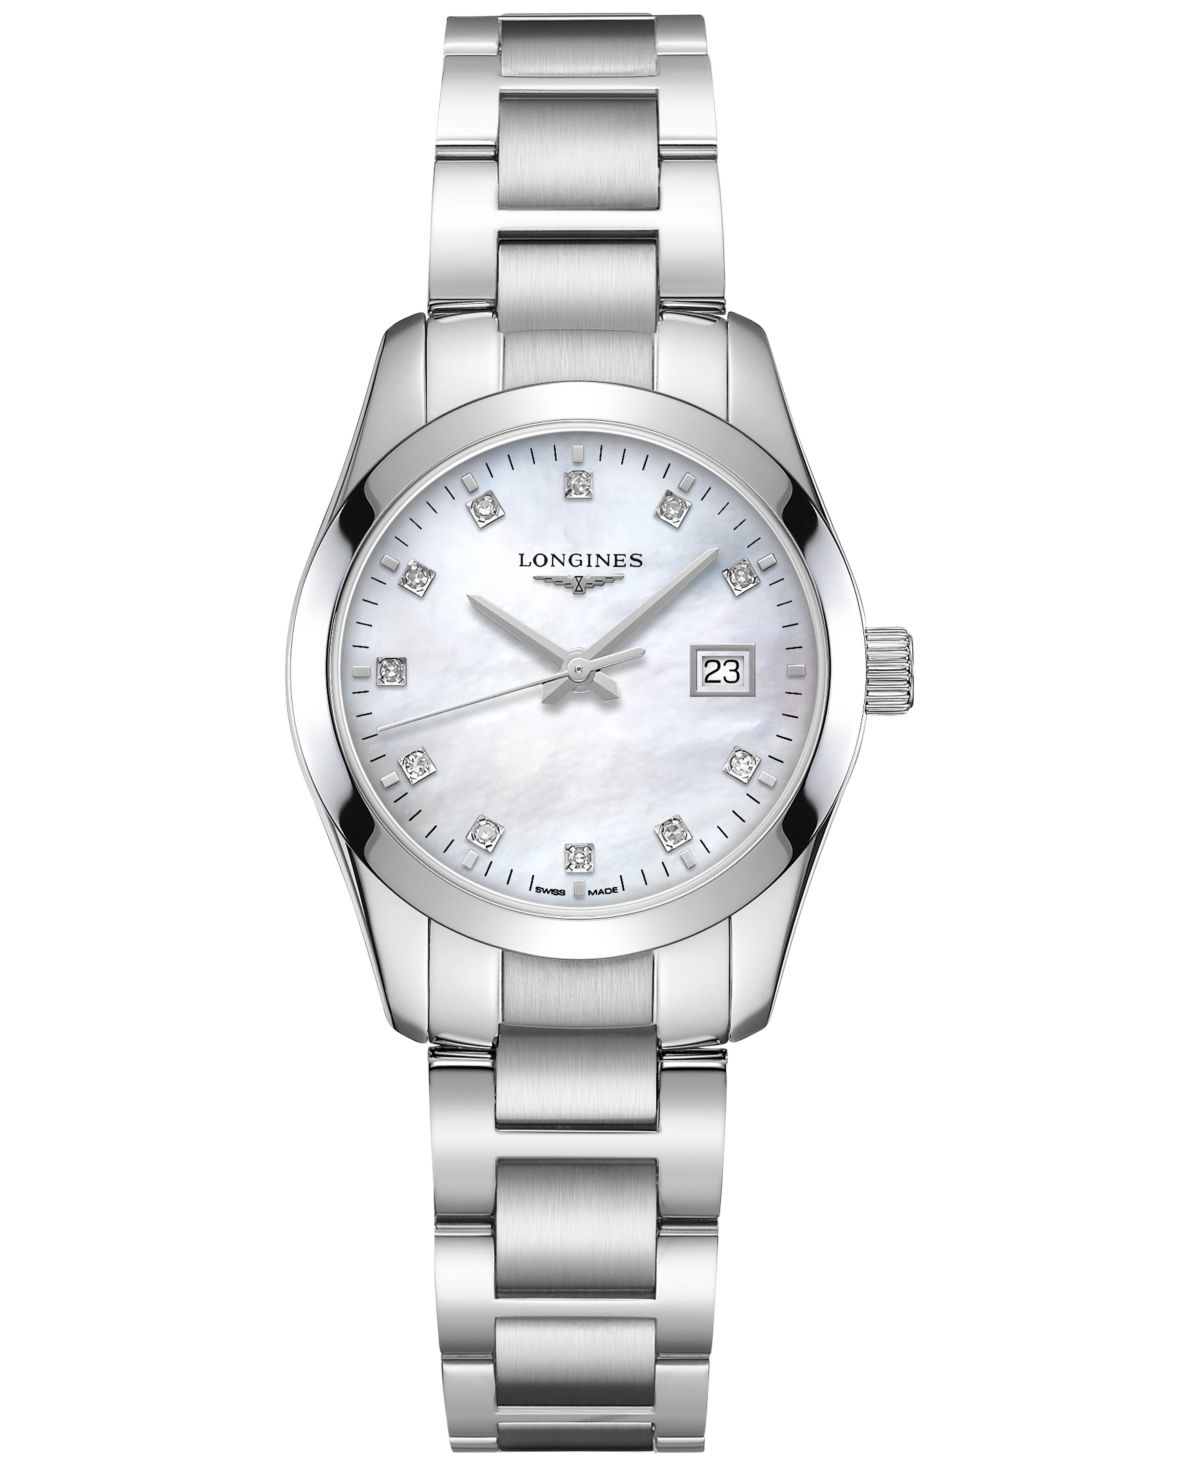 Longines Women's Swiss Conquest Classic Diamond Accent Stainless Steel Bracelet Watch 29.5mm - Stainless Steel #stainlesssteelrolex